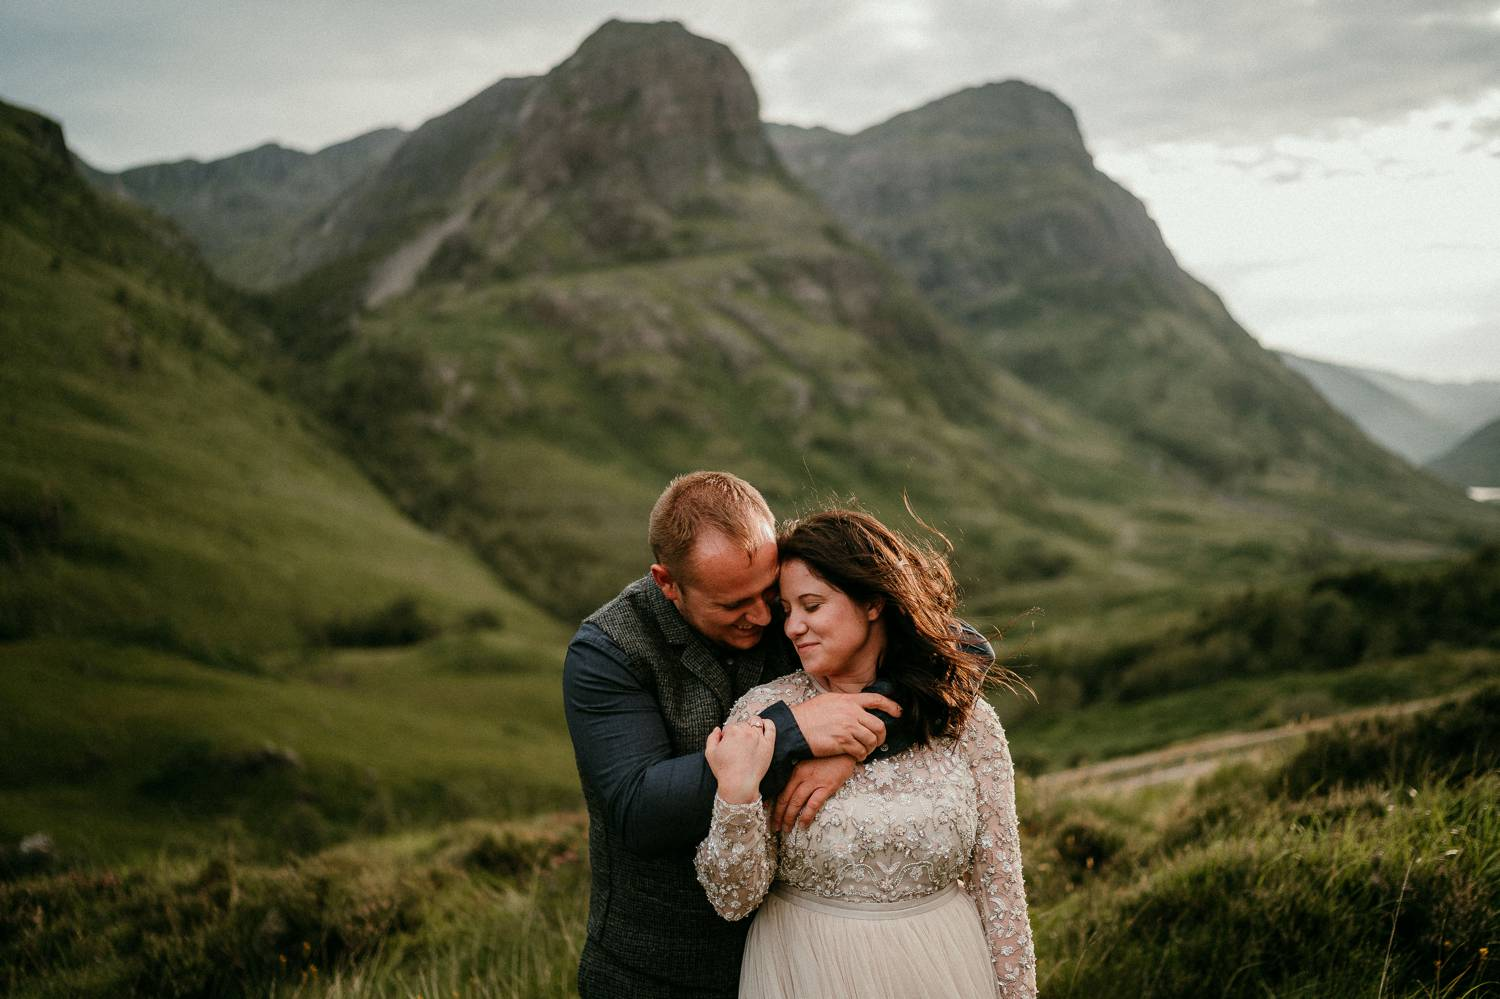 A groom stands behind his bride with his arms wrapped gently around her shoulders. She holds his arm and angles her face toward his in a loving embrace. Photographed by Rob Dight in the green hills of Ireland.